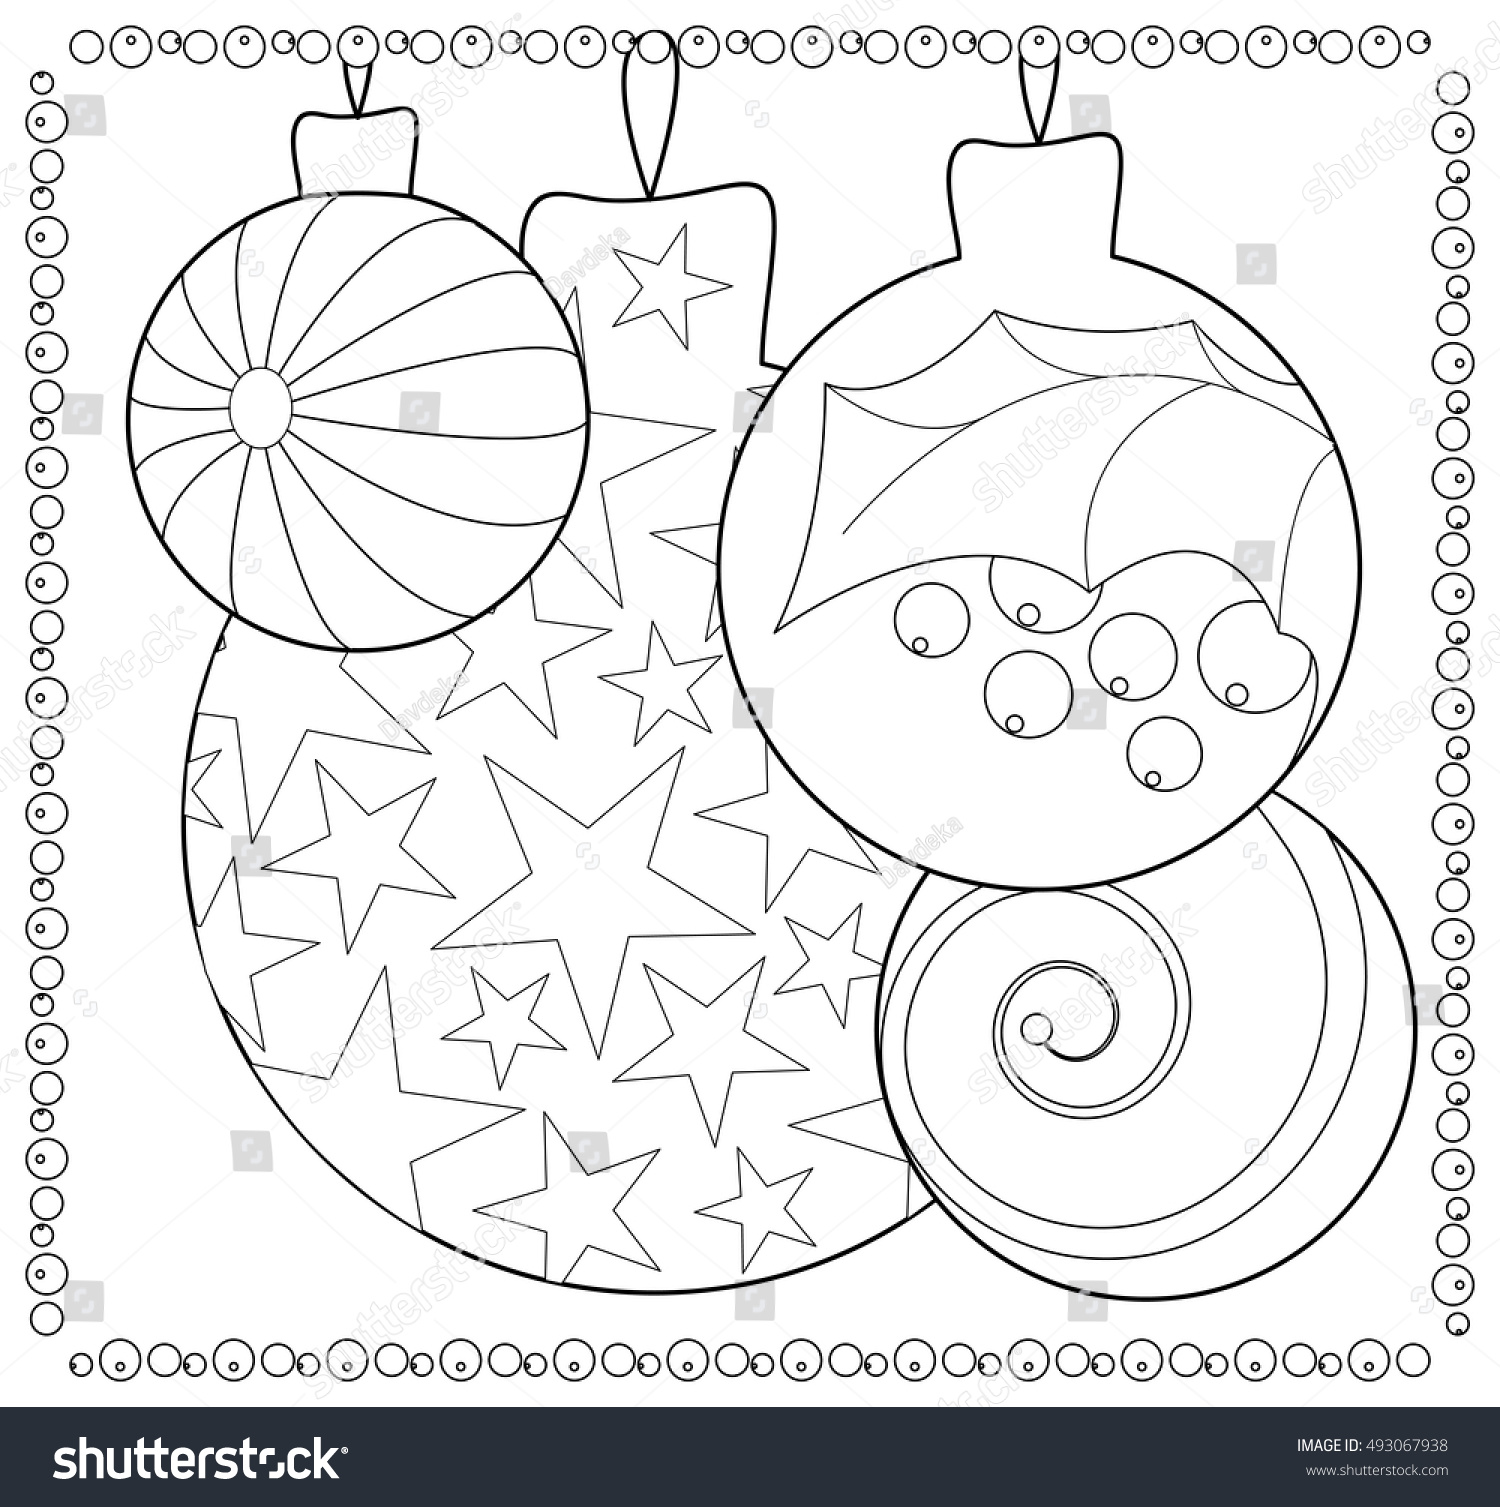 Christmas Fir Tree Ornament Coloring Page Stock Vector 493067938 ...